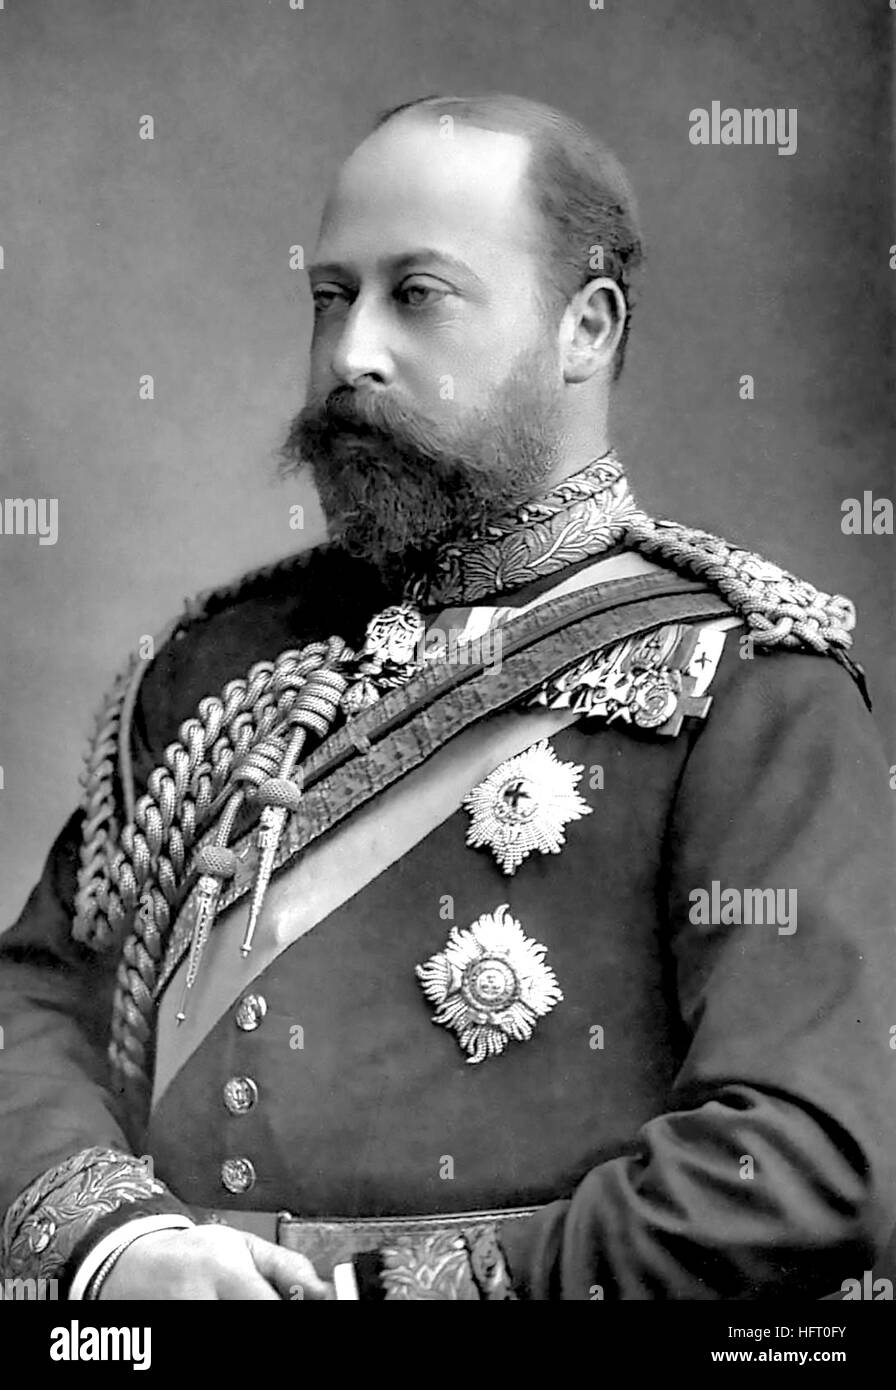 EDWARD VII (1841-1910) as Prince of Wales  about 1890 - Stock Image